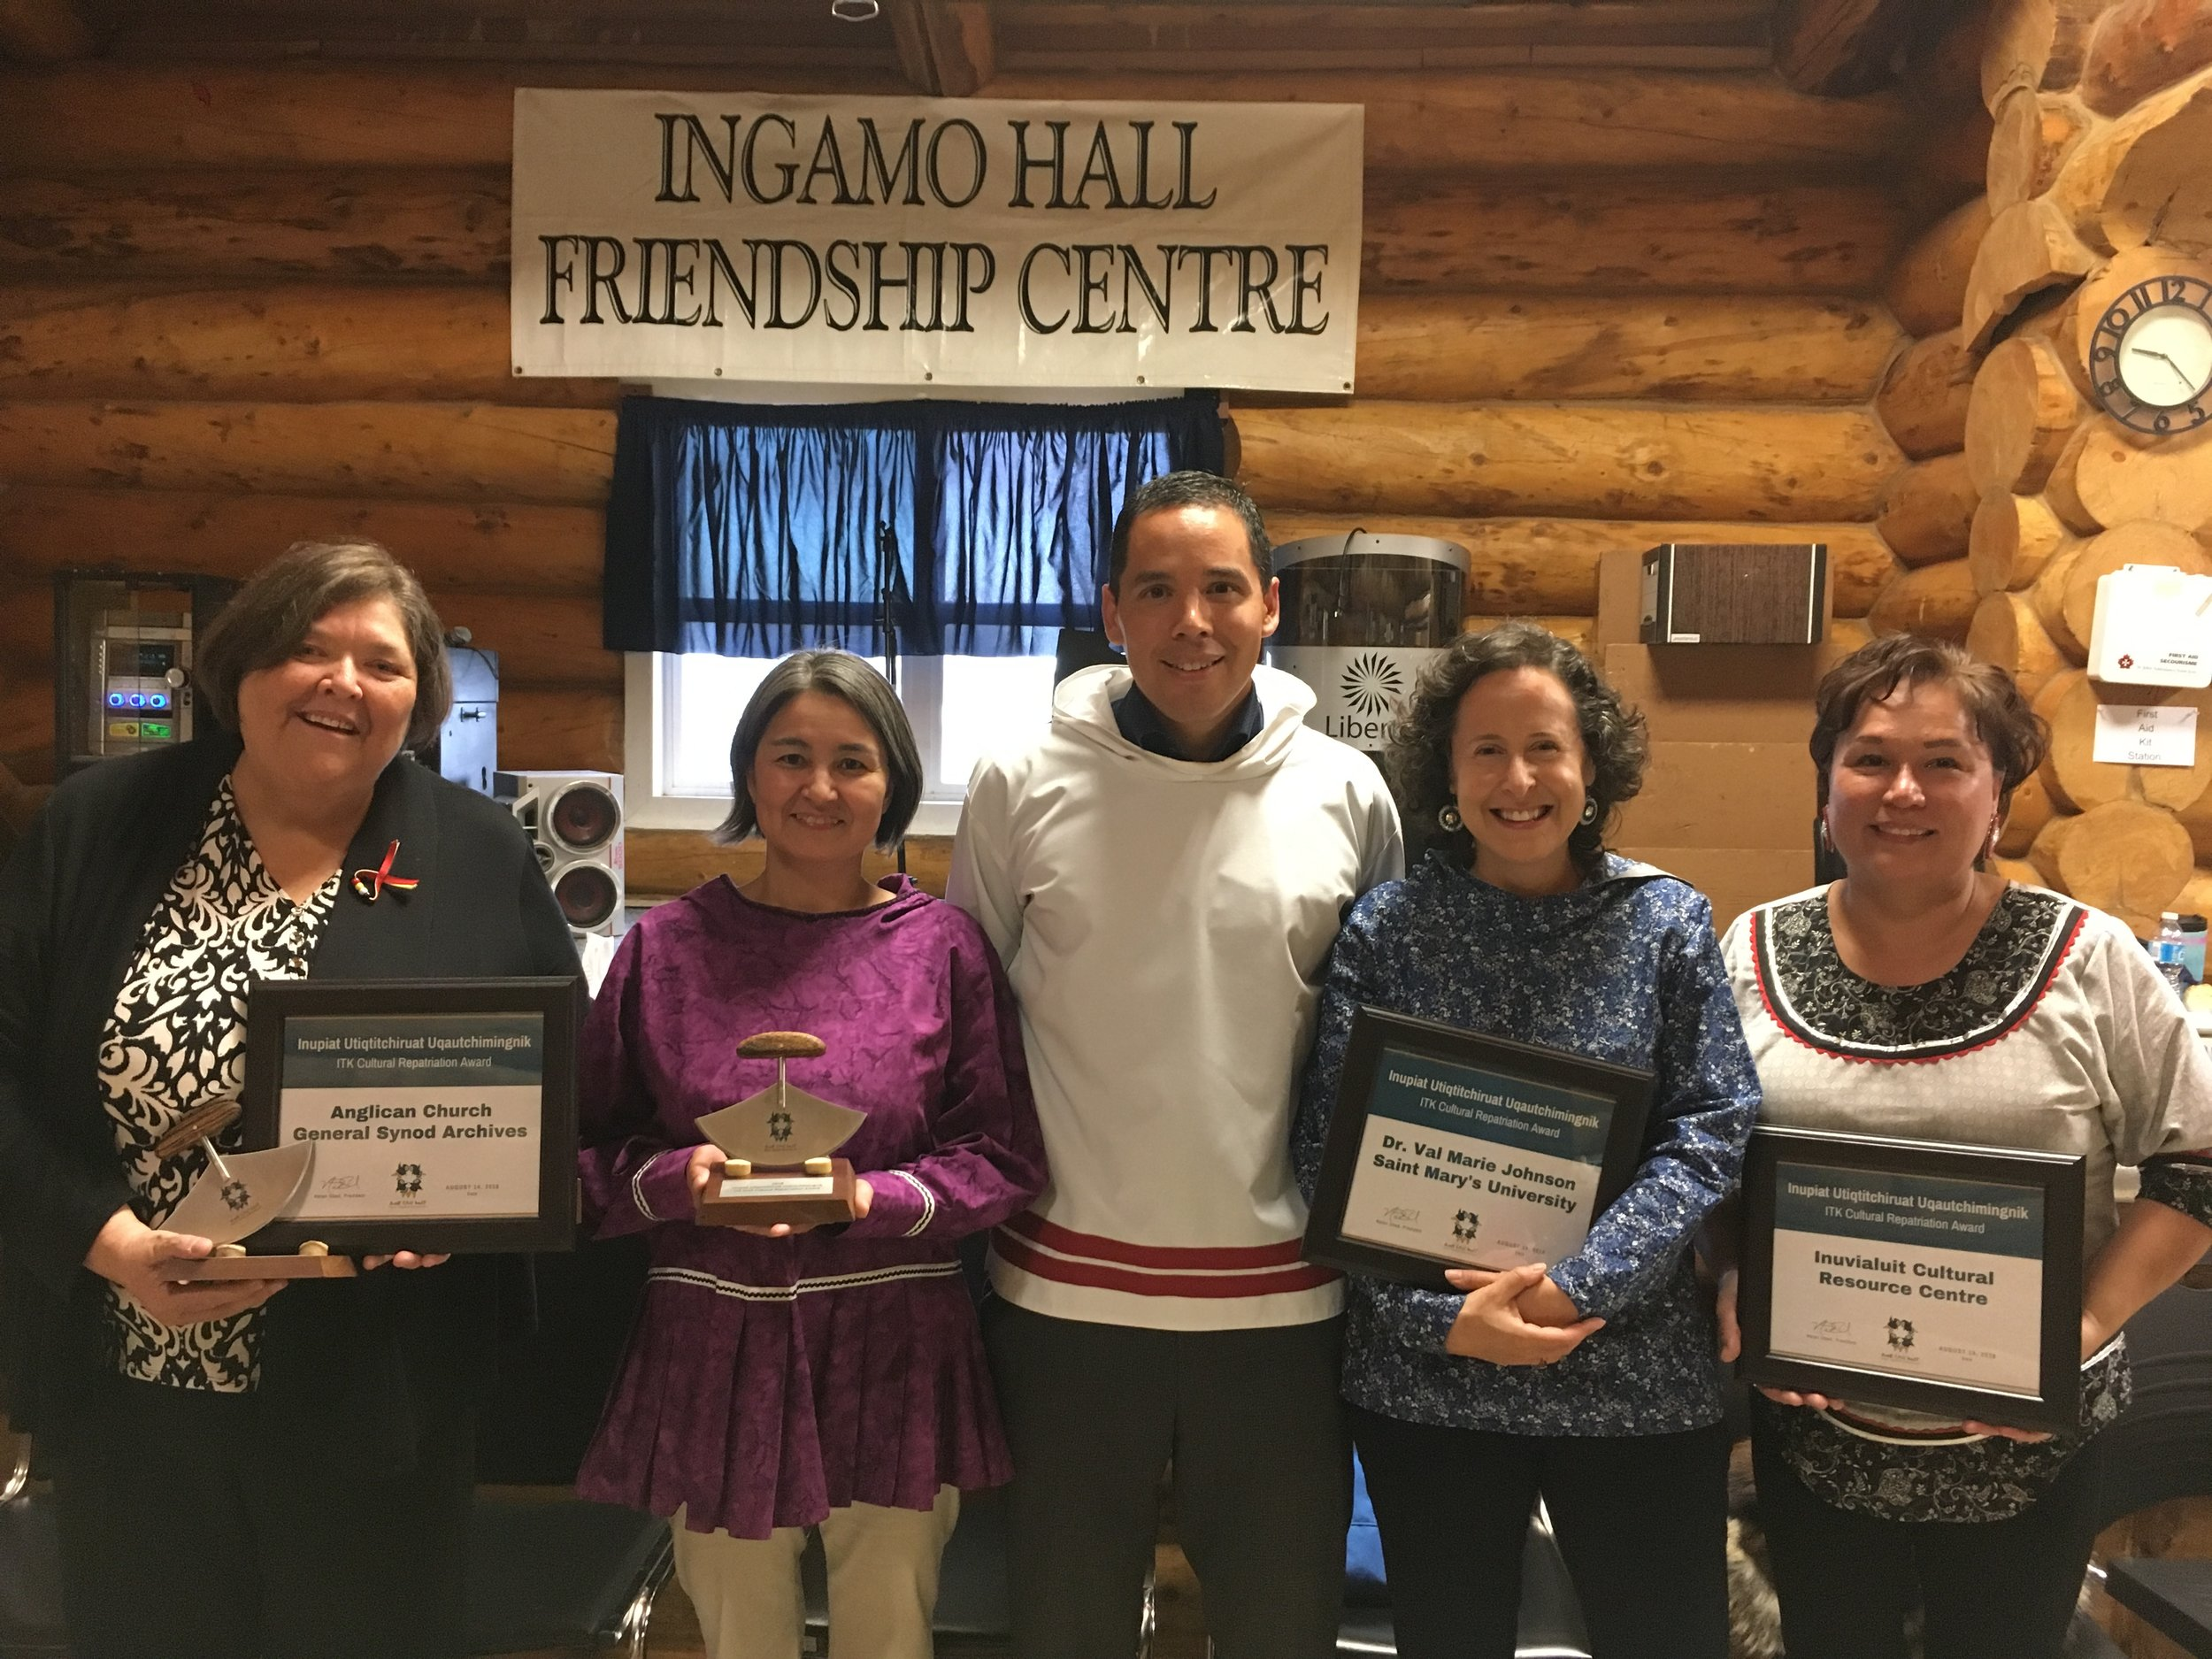 2018 Inuit Tapiriit Kanatami Awards and Feast, Ingamo Hall Friendship Centre, Inuvik NWT. Pictured from the left are Nancy Hurn (Anglican Archives), Deanna Marie Jacobson, (Inuvialuit Cultural Resource Centre / ICRC), Natan Obed, (President of ITK), Val Marie Johnson (Saint Mary's University), Ethel-Jean Gruben (ICRC).